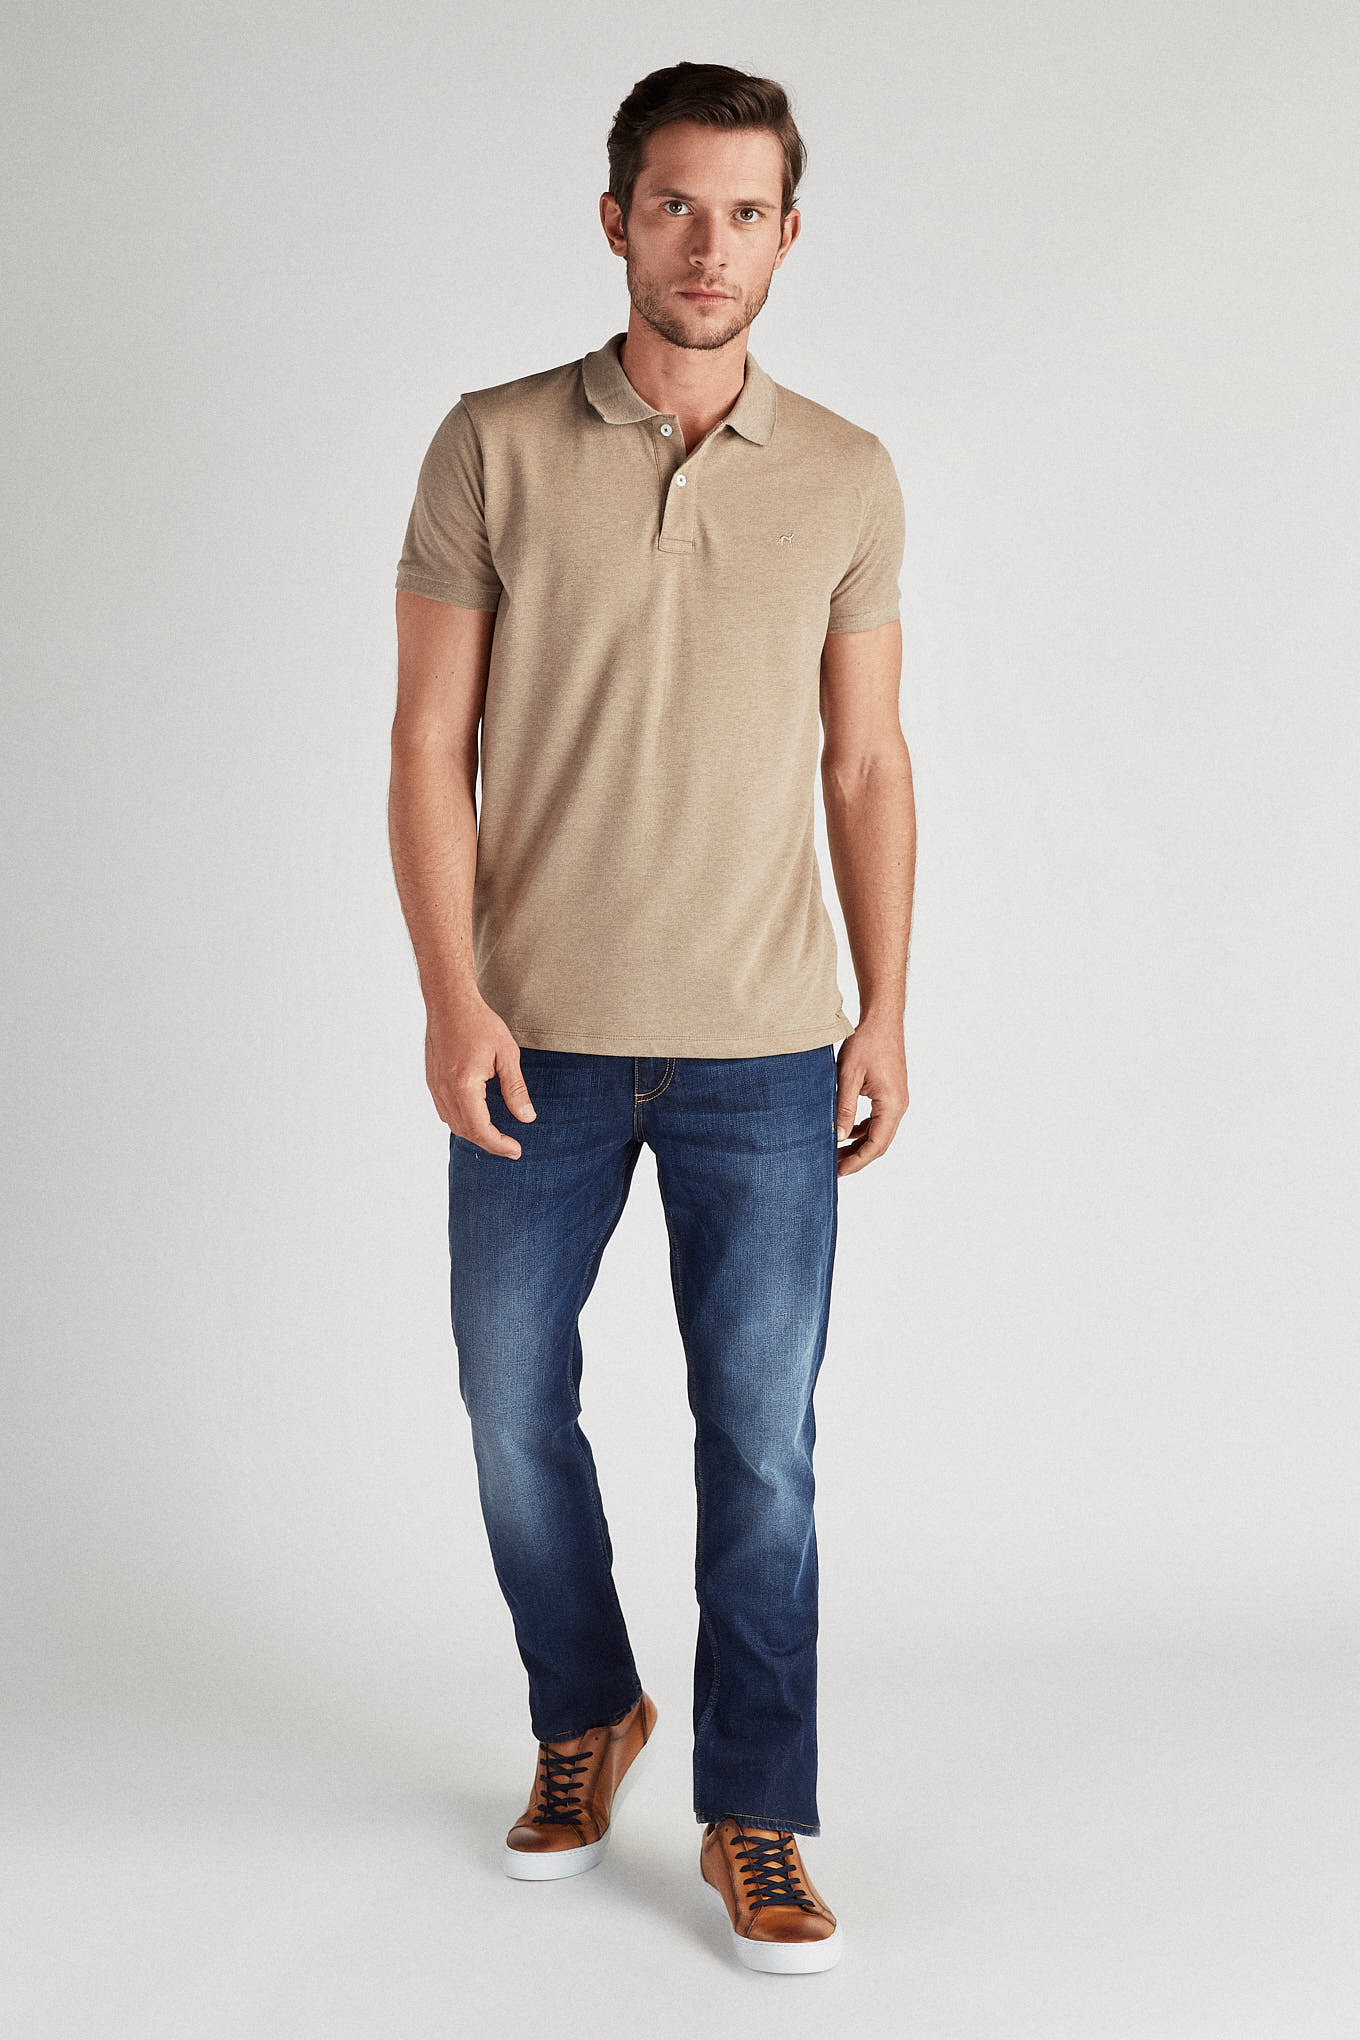 Polo Piquet Dark Beige Sport Man